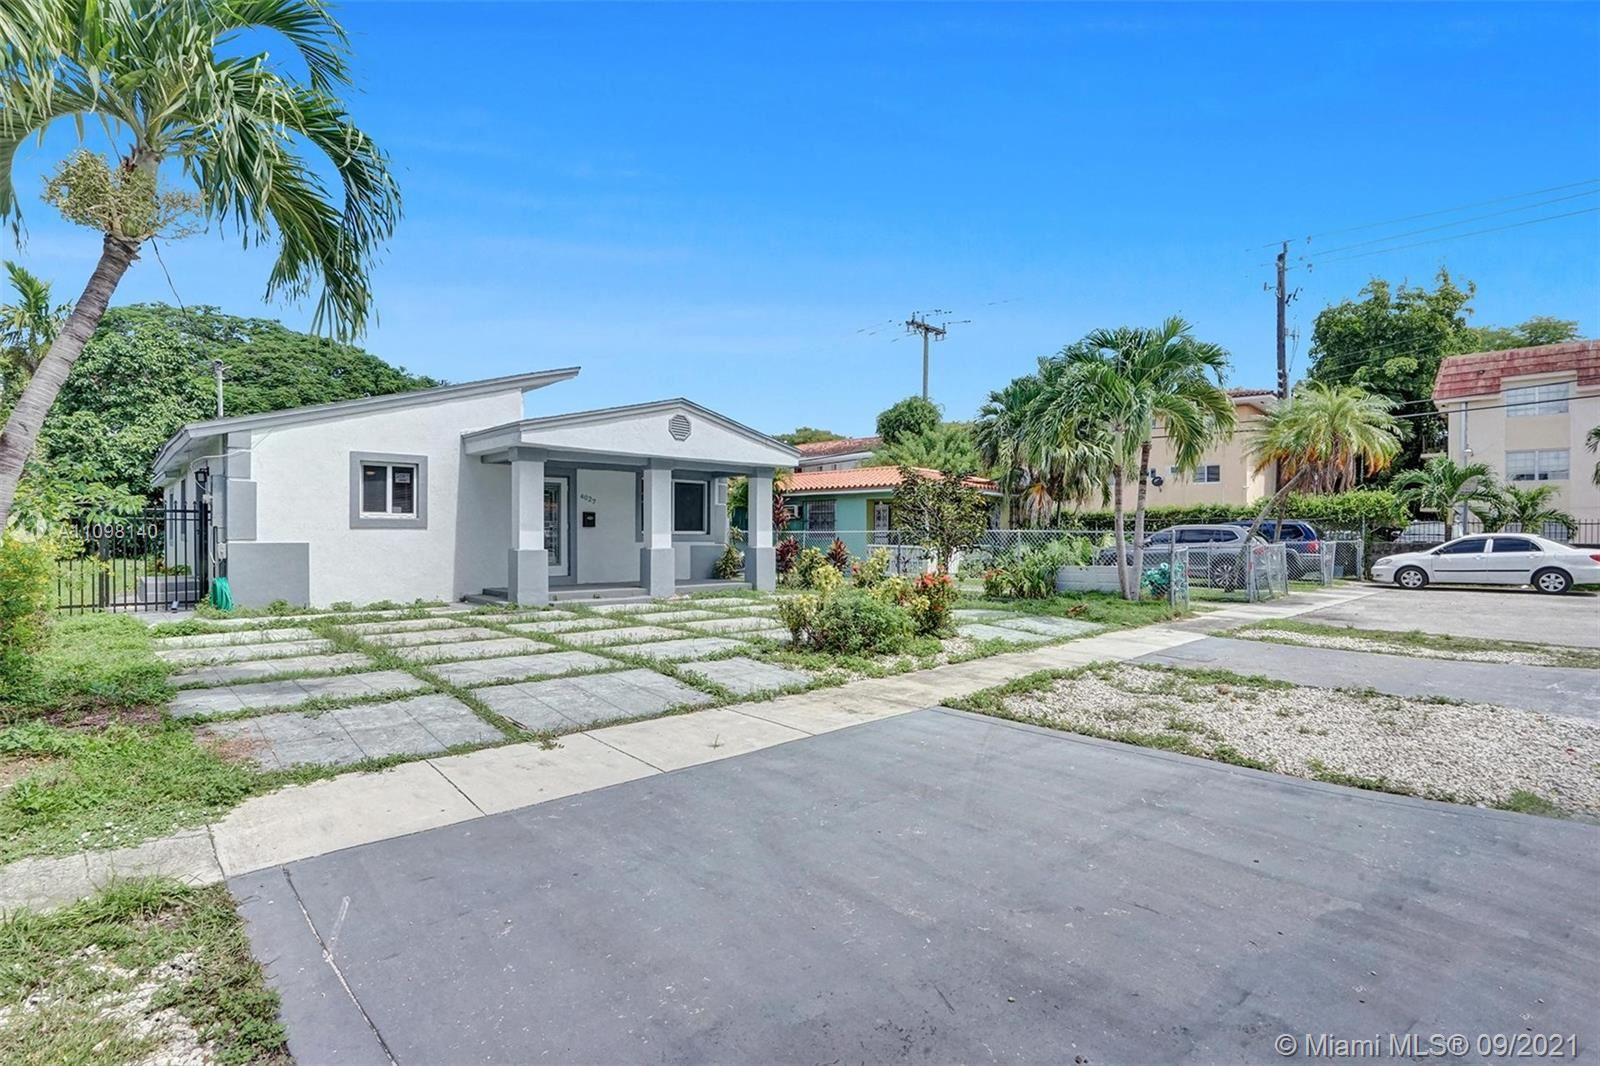 Photo of 4027 SW 11th St, Coral Gables, FL 33134 (MLS # A11098140)